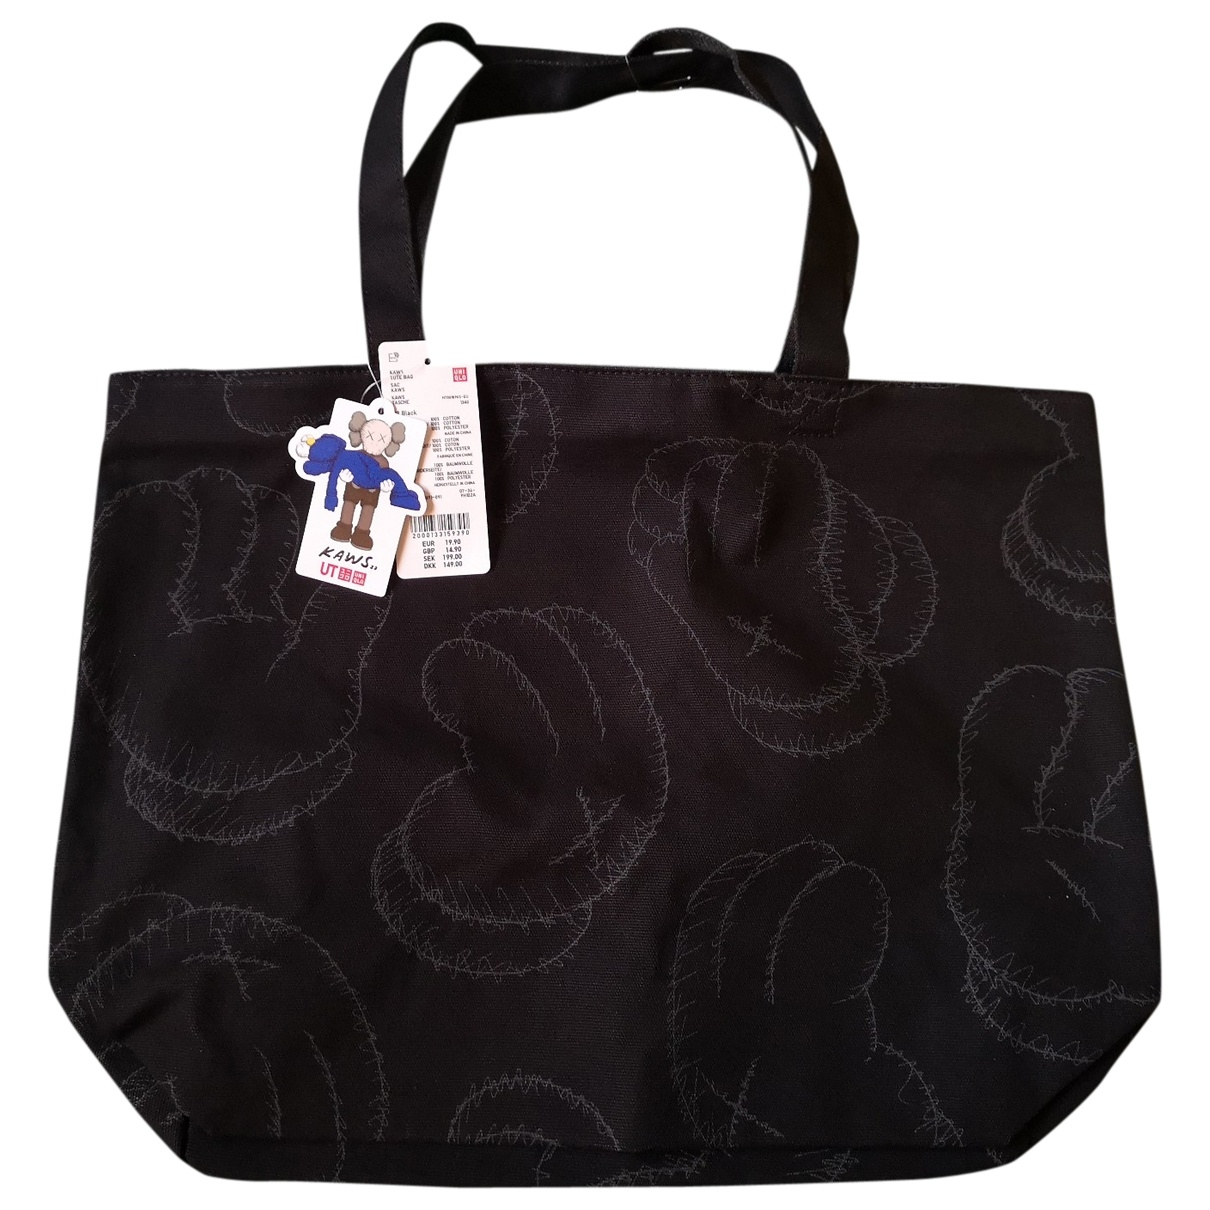 Kaws X Uniqlo \N Black Cotton handbag for Women \N